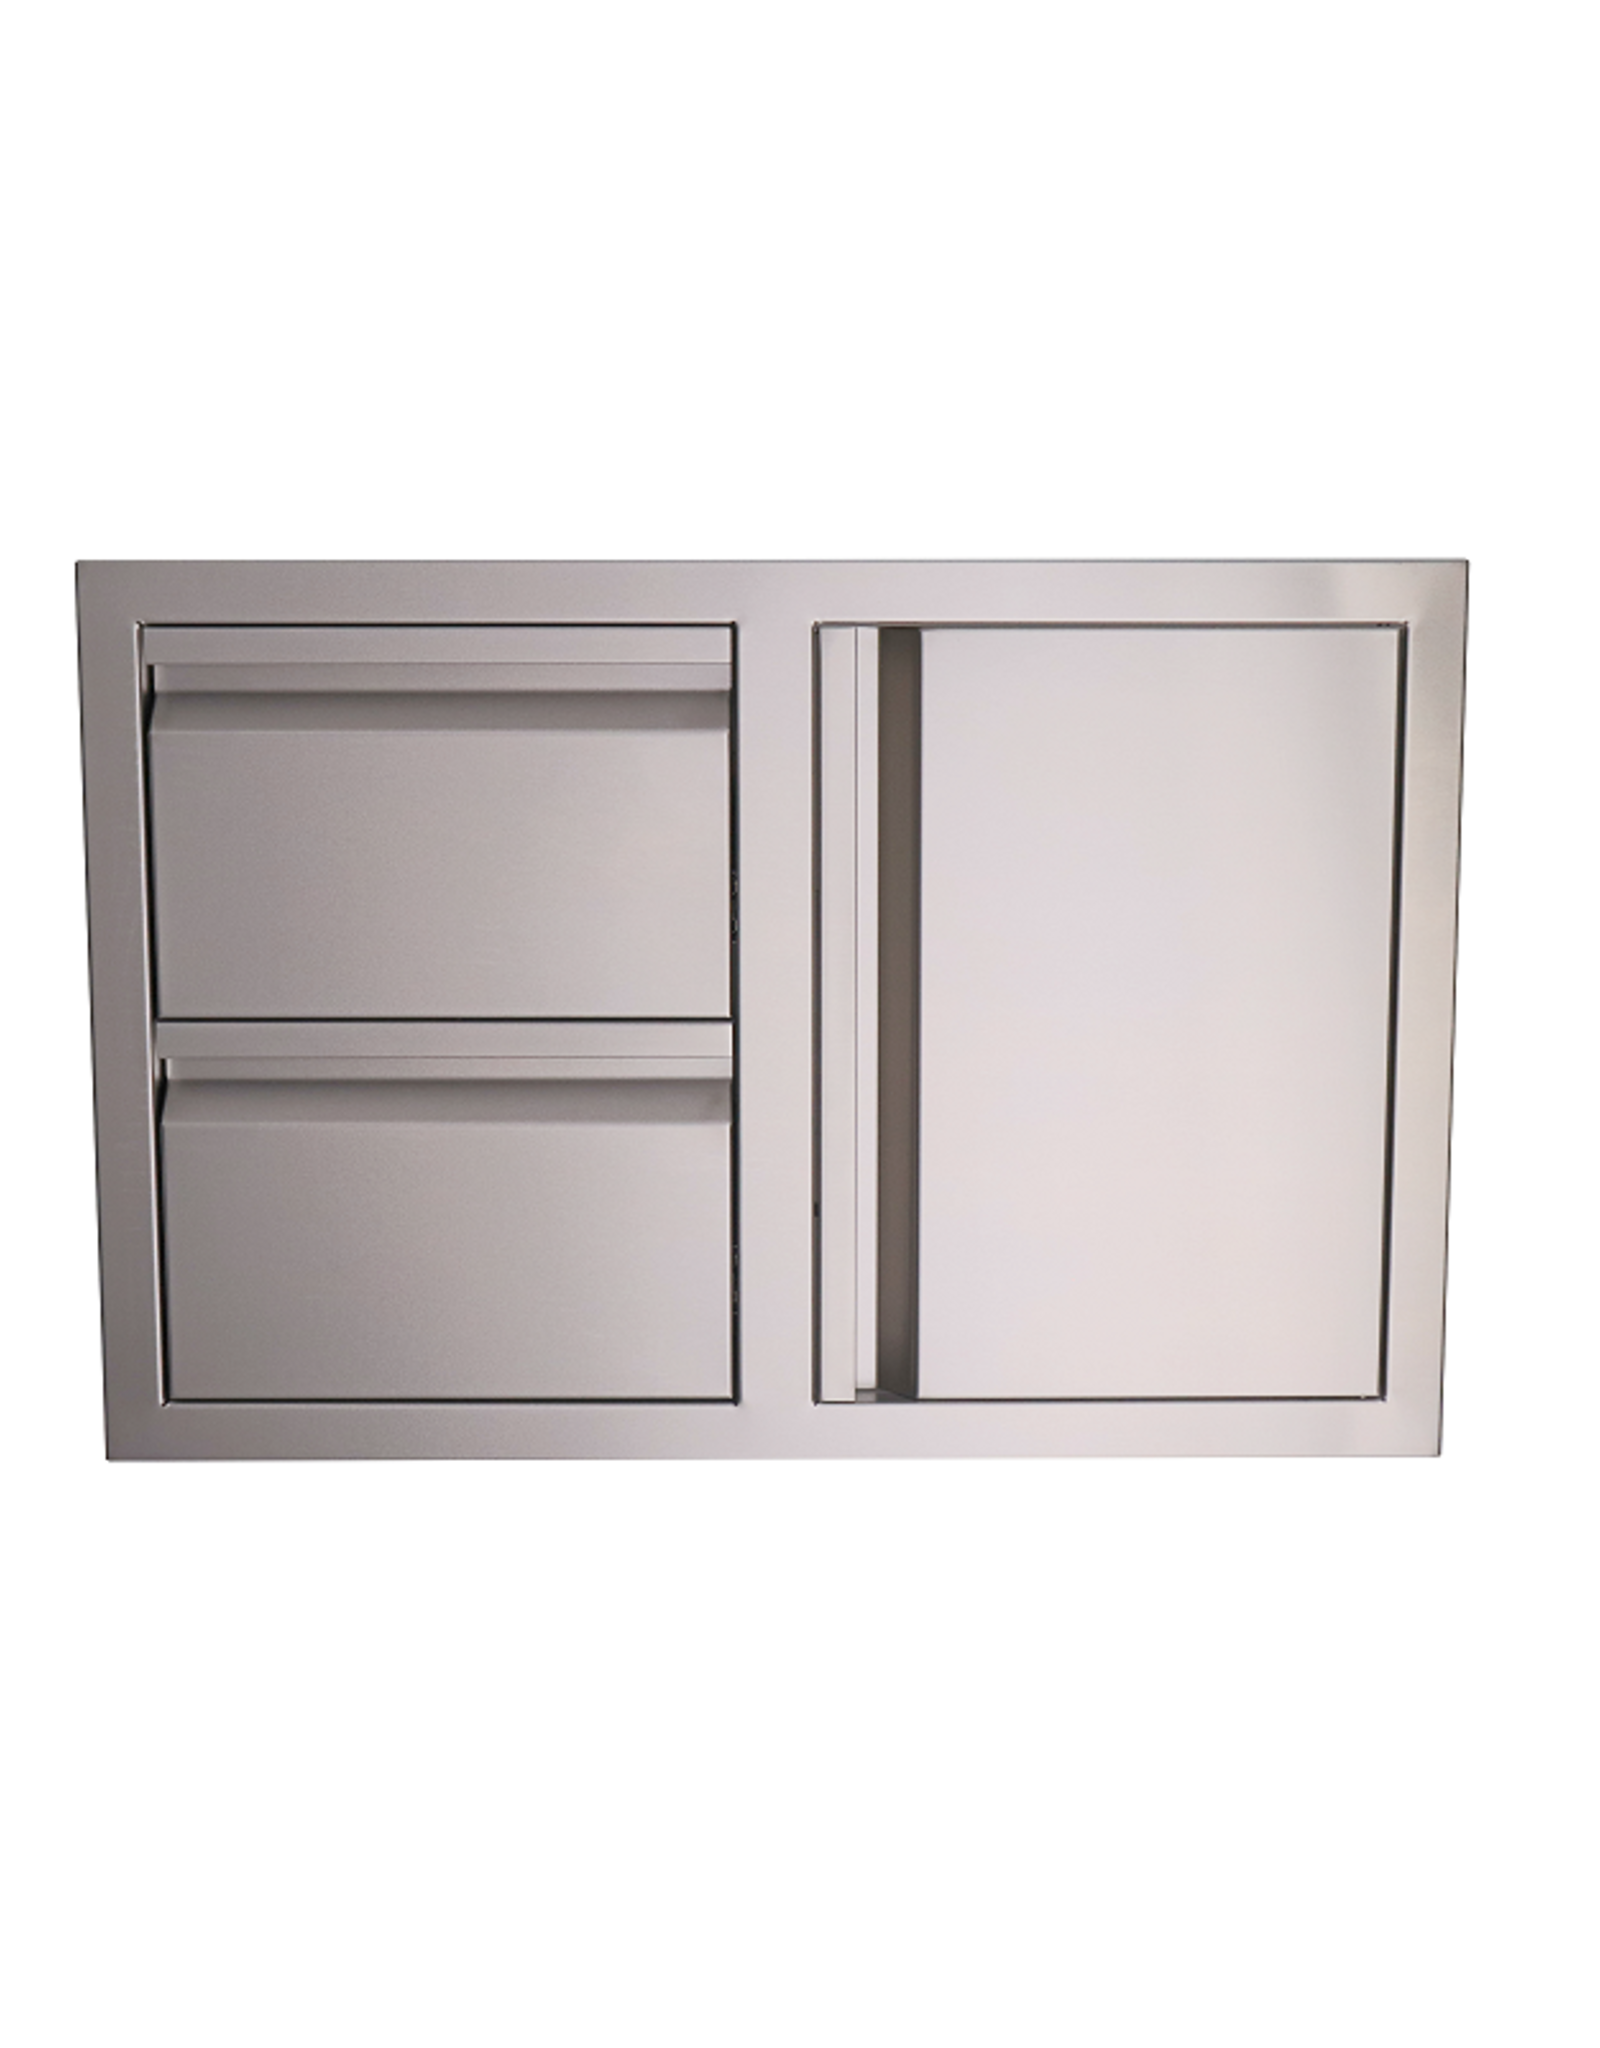 Renaissance Cooking Systems Renaissance Cooking Systems The Valiant Series Double Drawer w/ Door Combo - VDC1